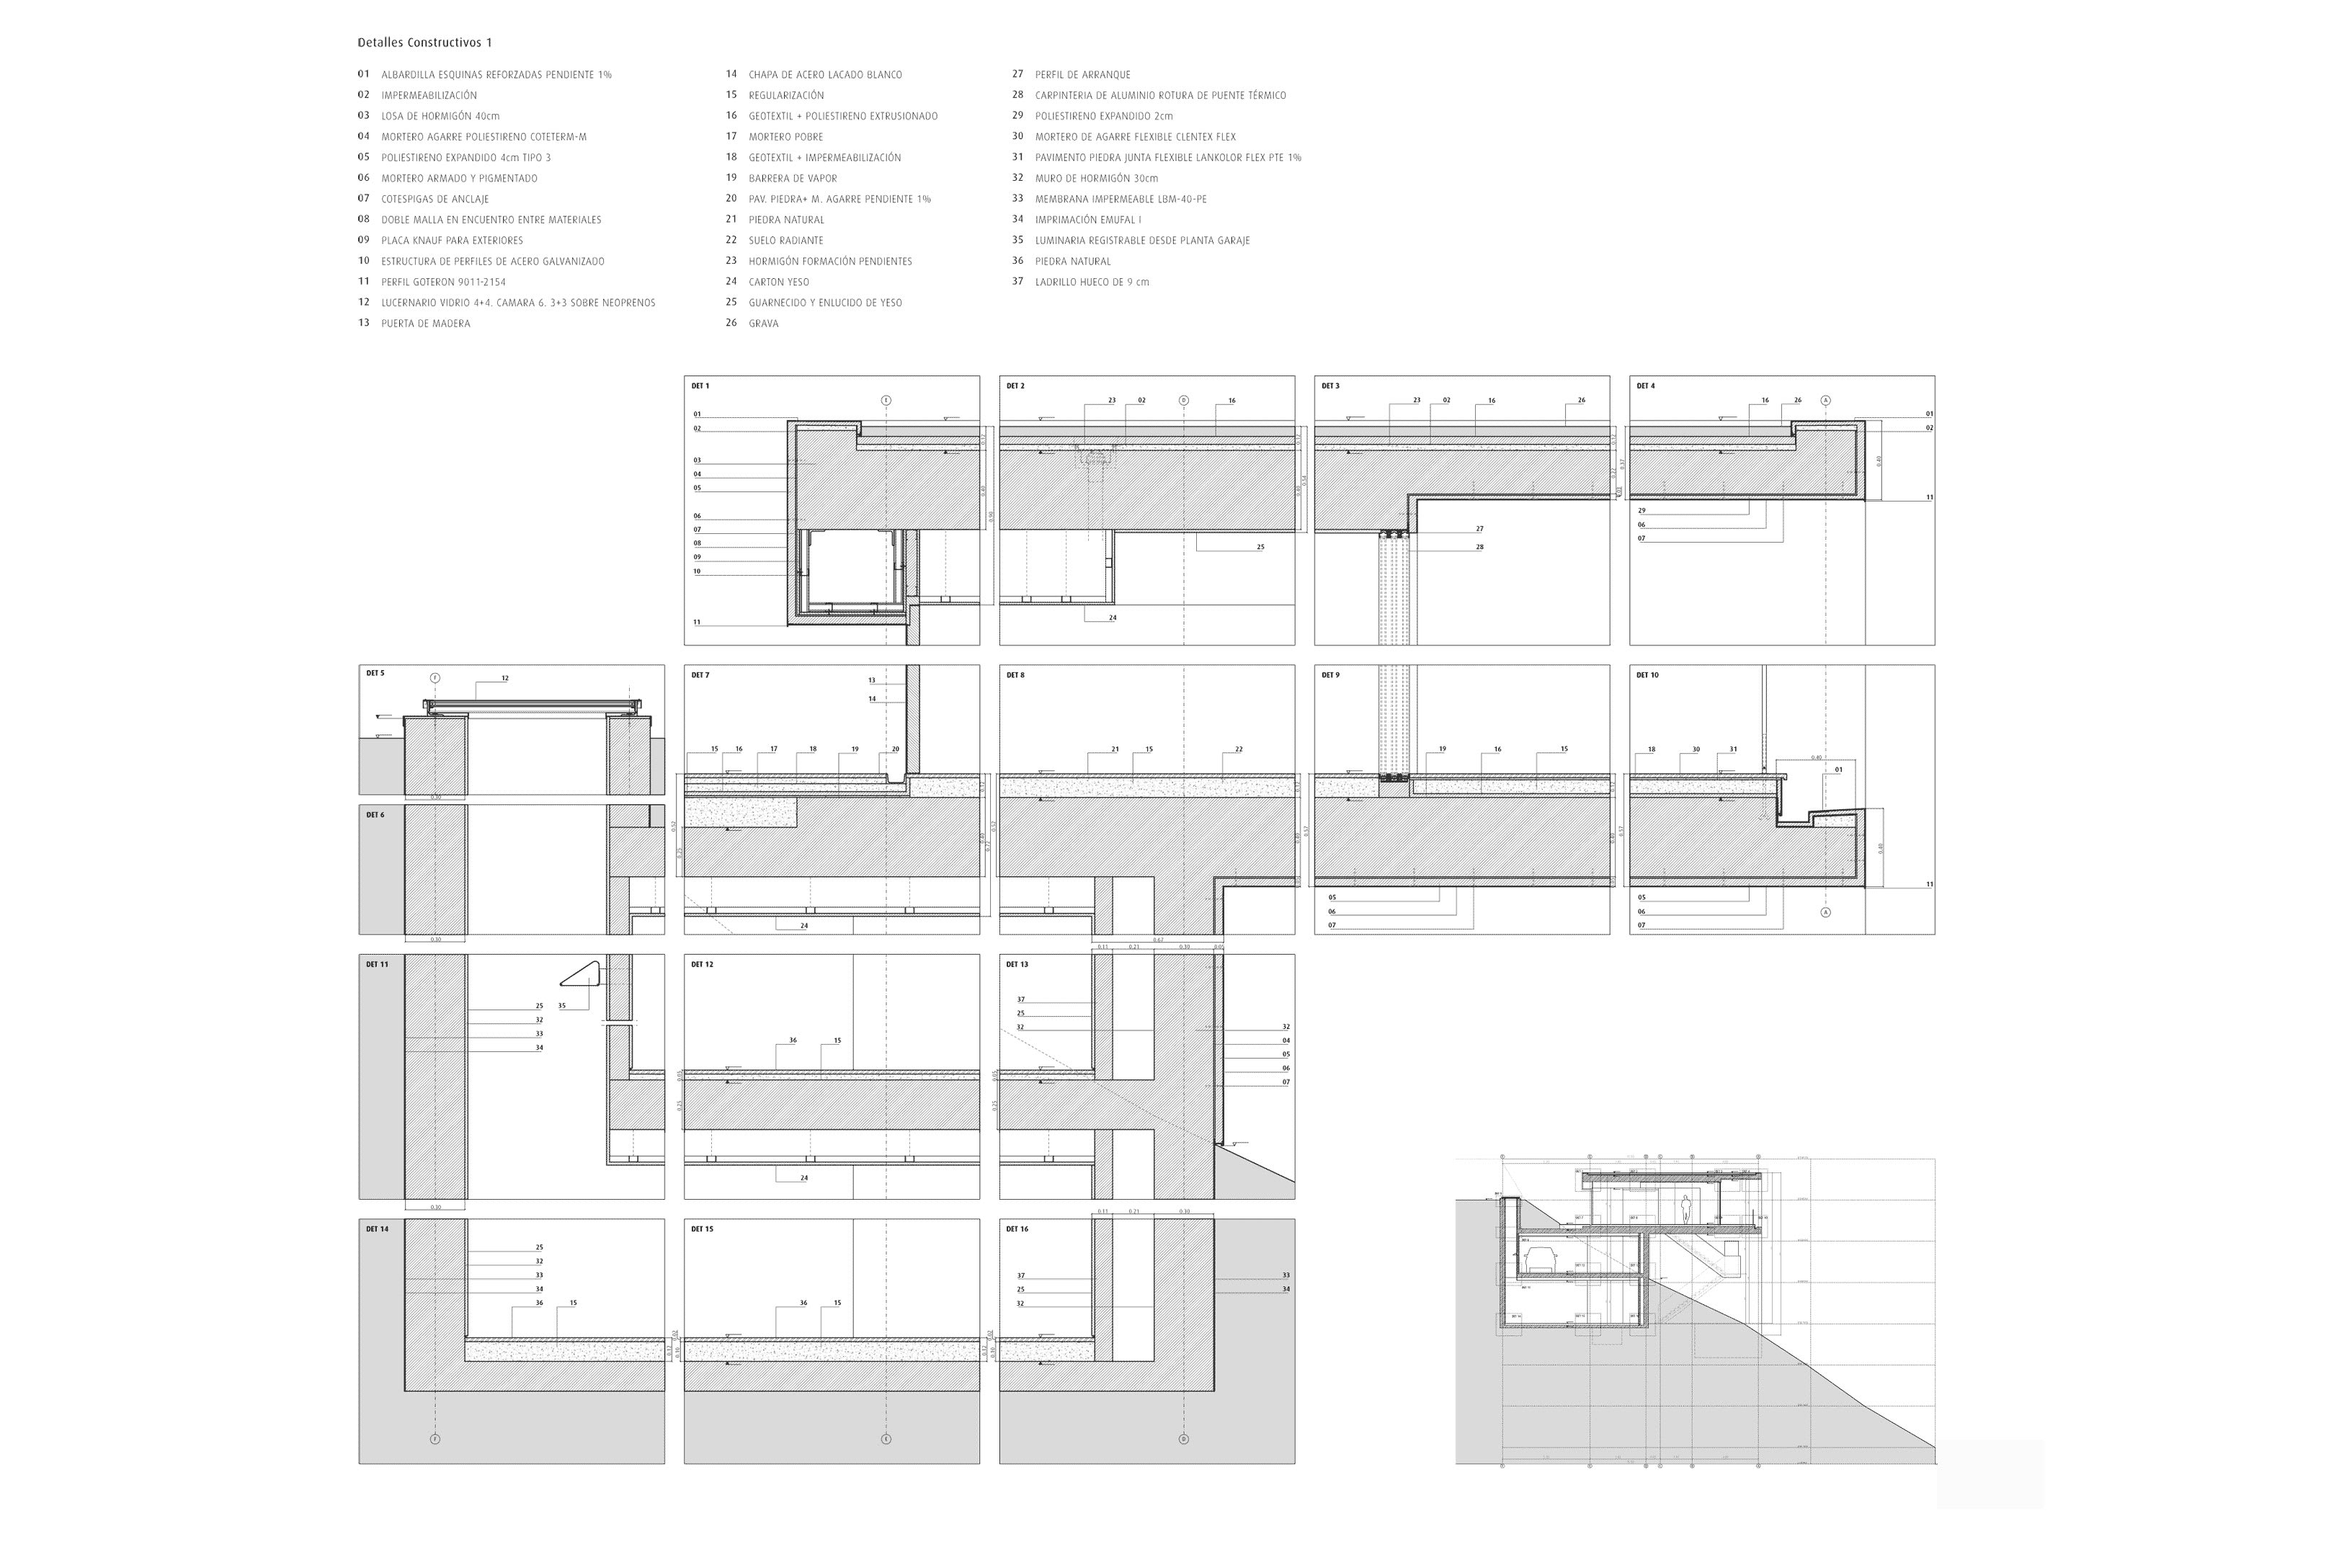 Details of outdoor spaces a collection curated by divisare - Fran silvestre arquitectos ...